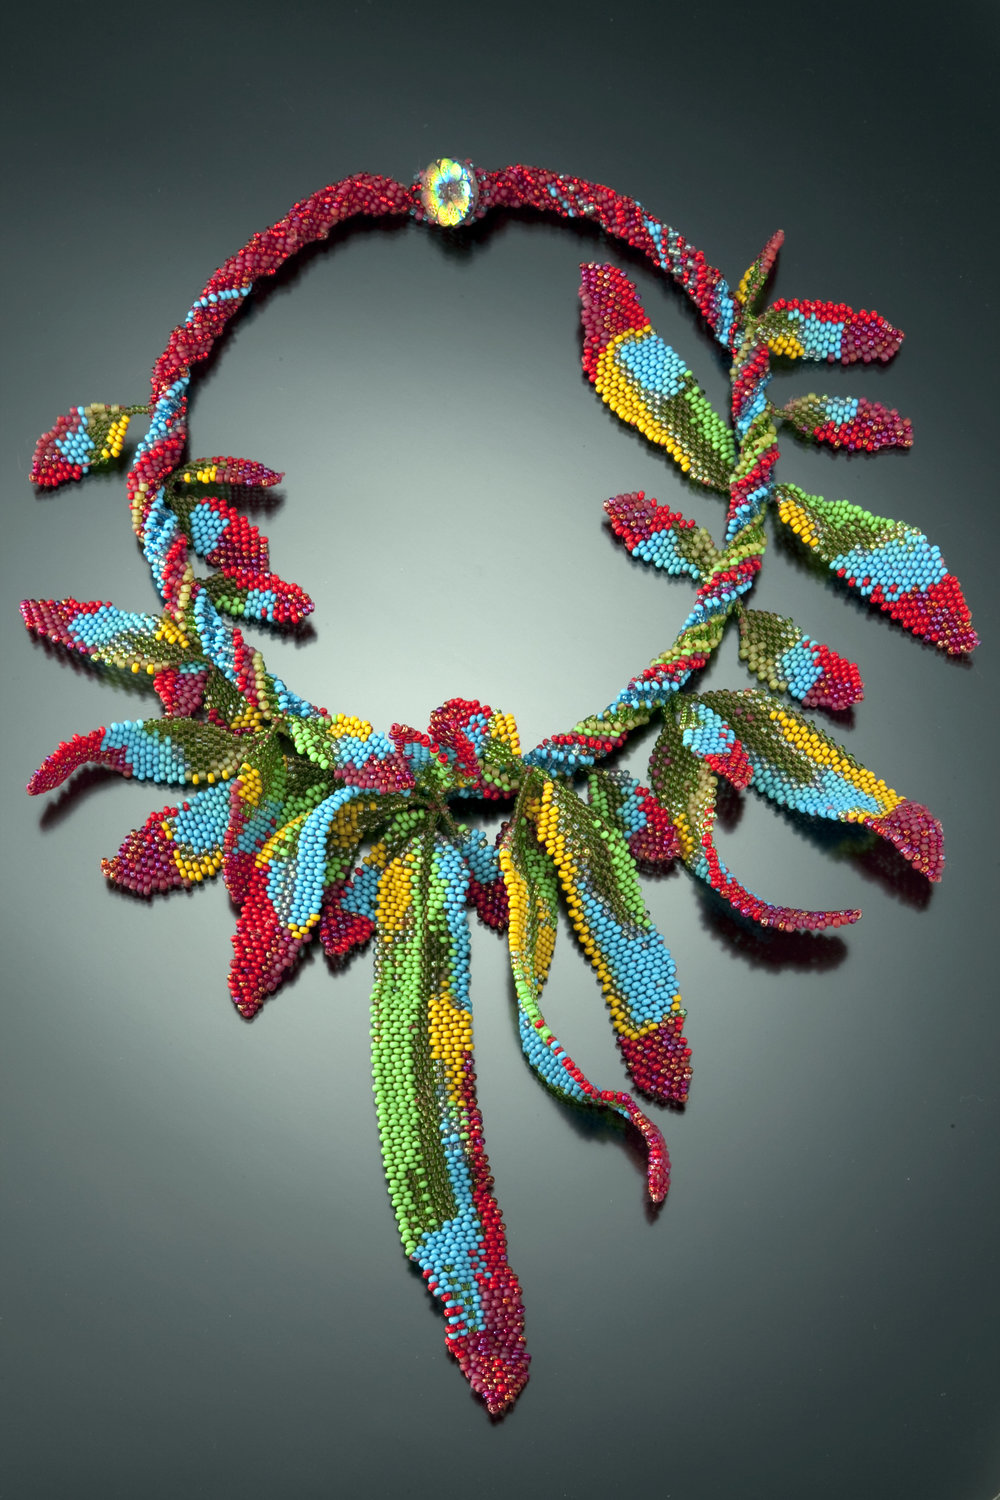 Parrot Feathers - Bead-Woven Vibrant Feather Boa Necklace